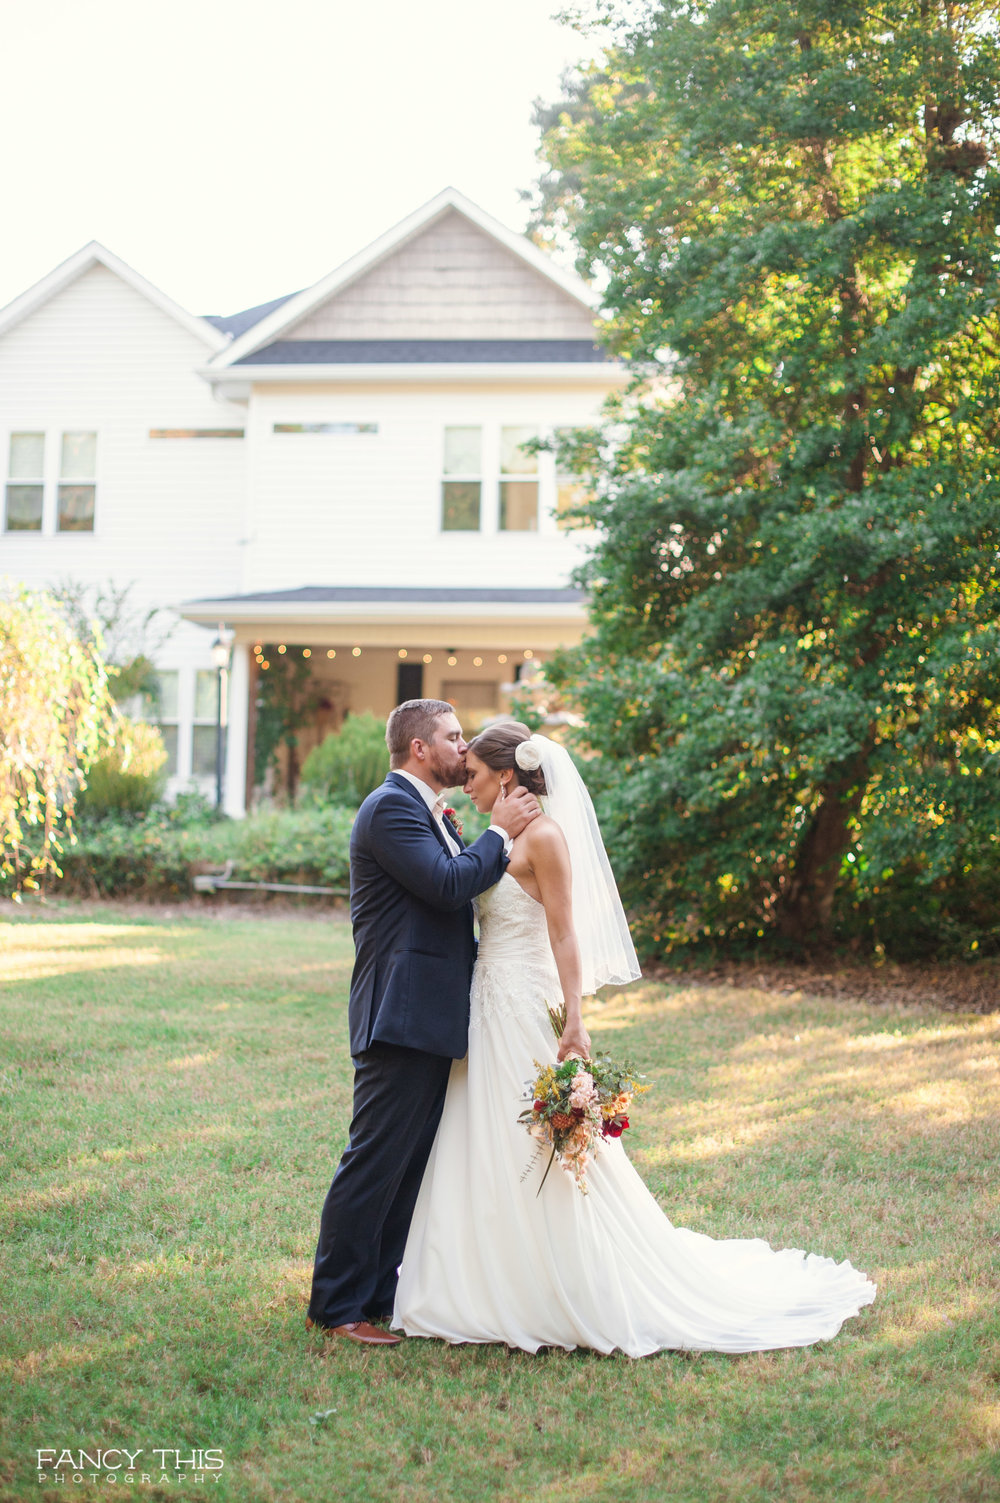 garrettanddiana_wedding_lo-res-411.jpg